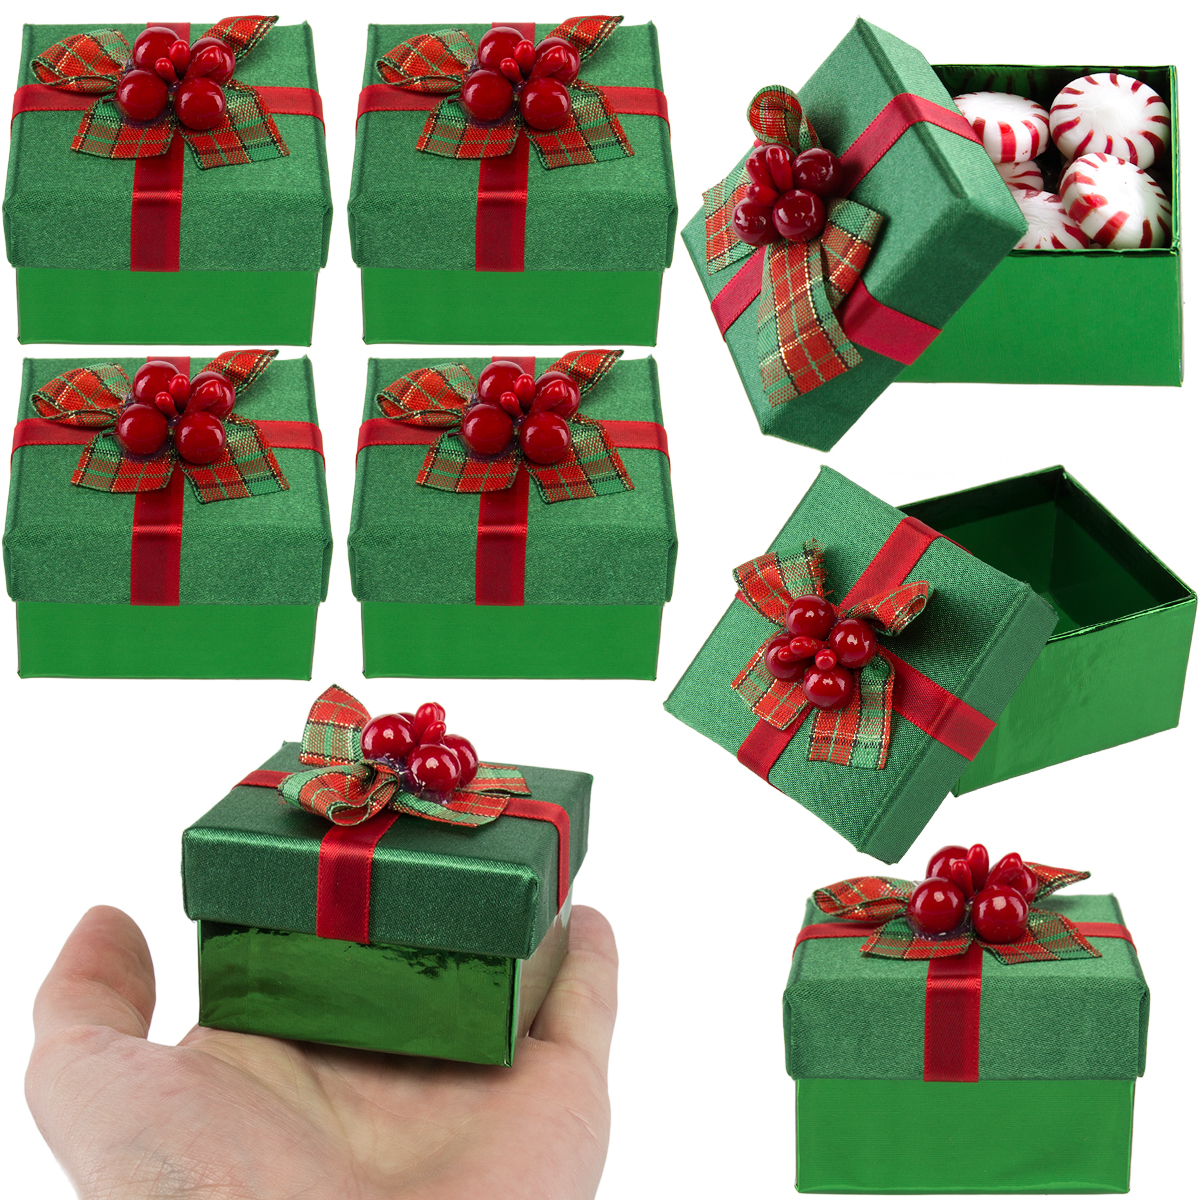 picture 2 of 10 - Decorative Christmas Gift Boxes With Lids